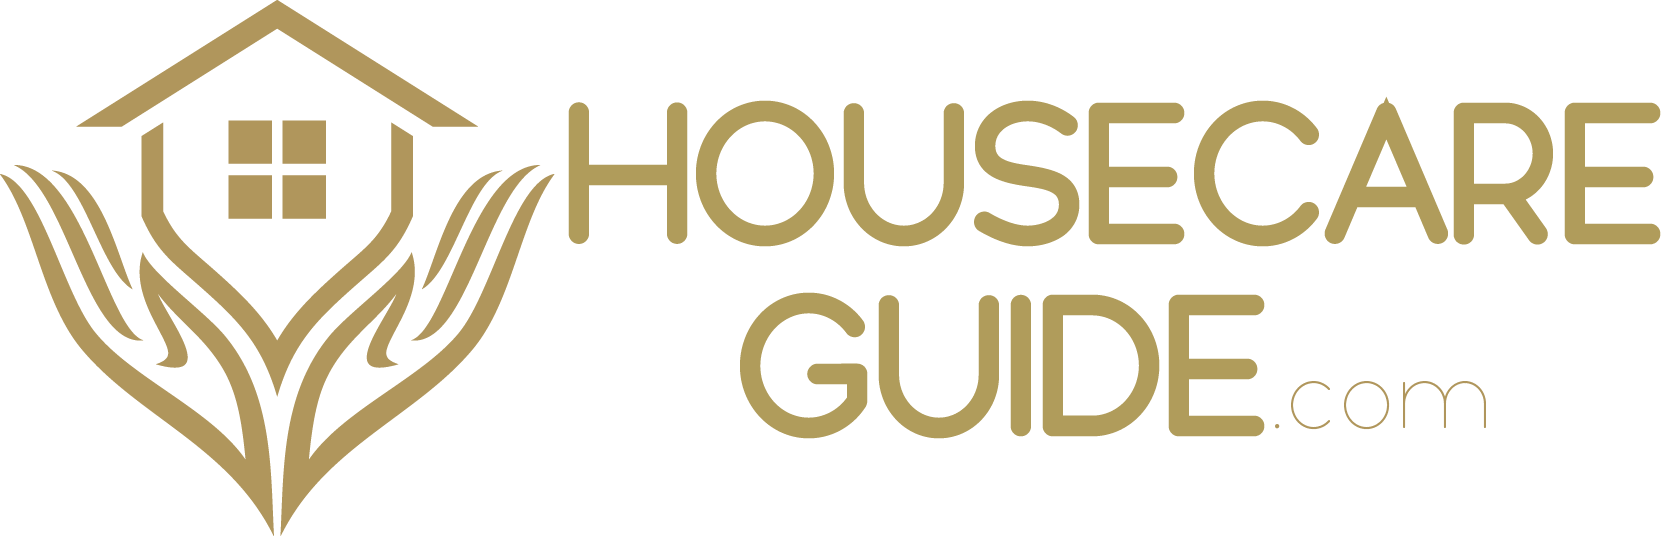 House Care Guide